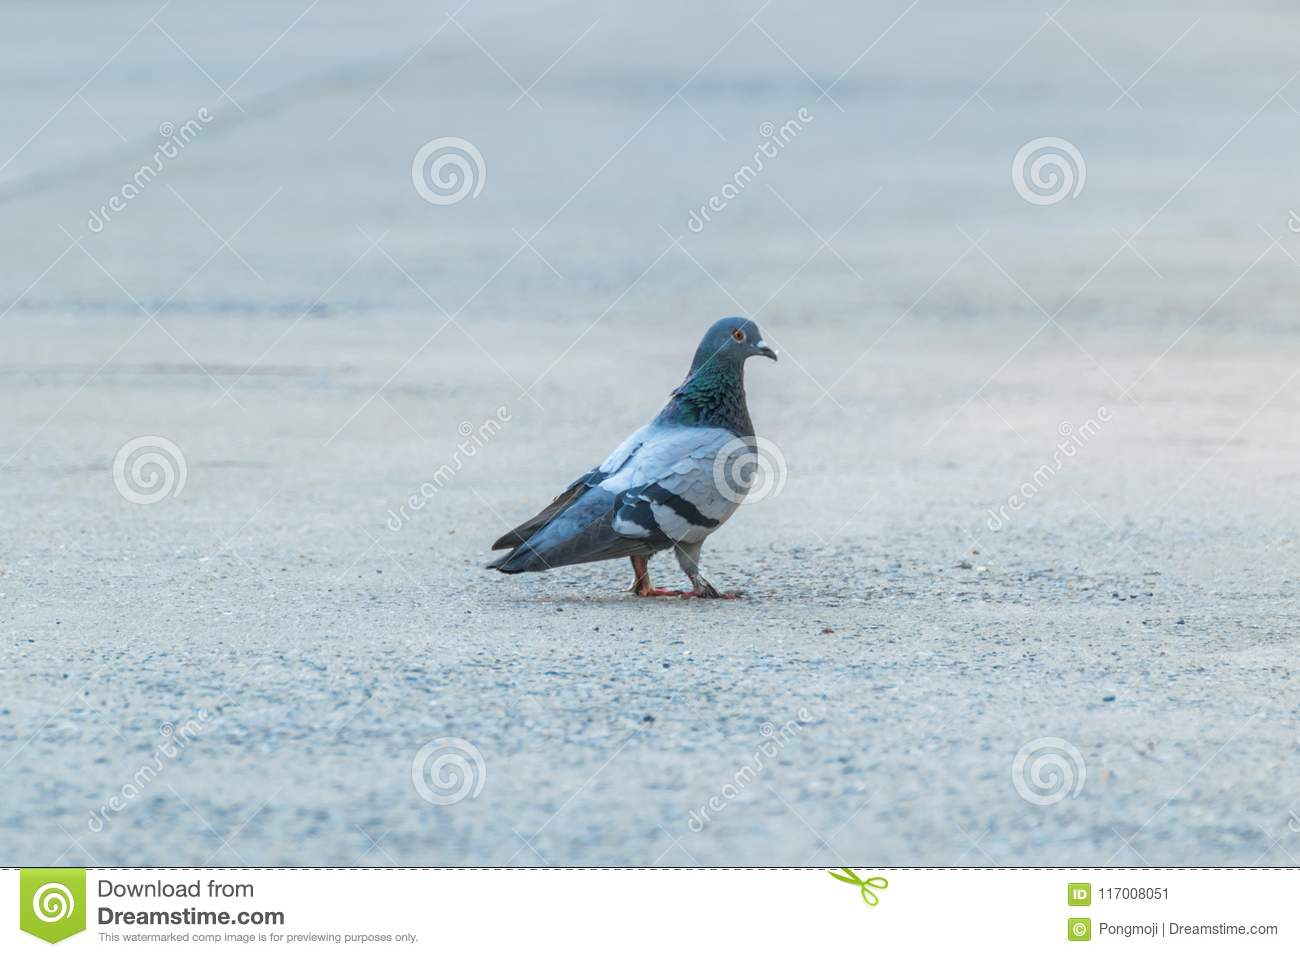 Bird (Dove, Pigeon or Disambiguation) in a city